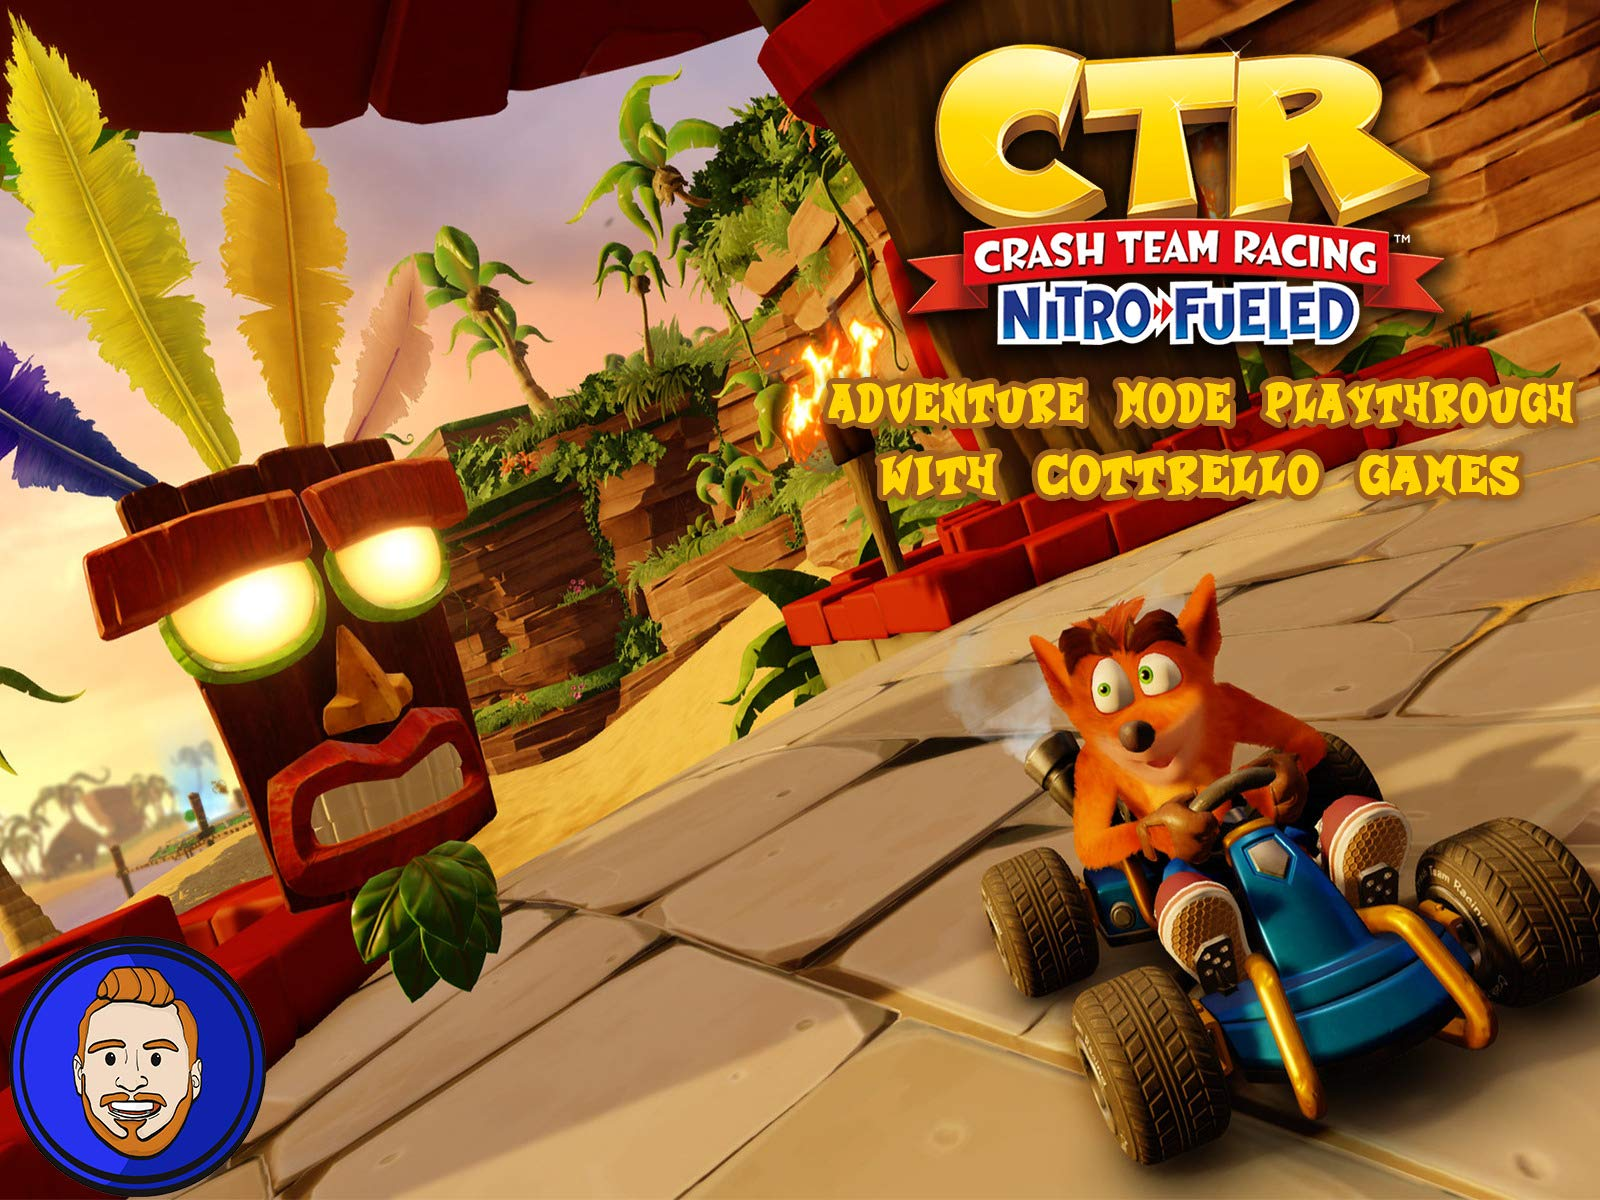 Crash Team Racing Nitro-Fueled Complete Adventure Mode Playthrough with Cottrello Games